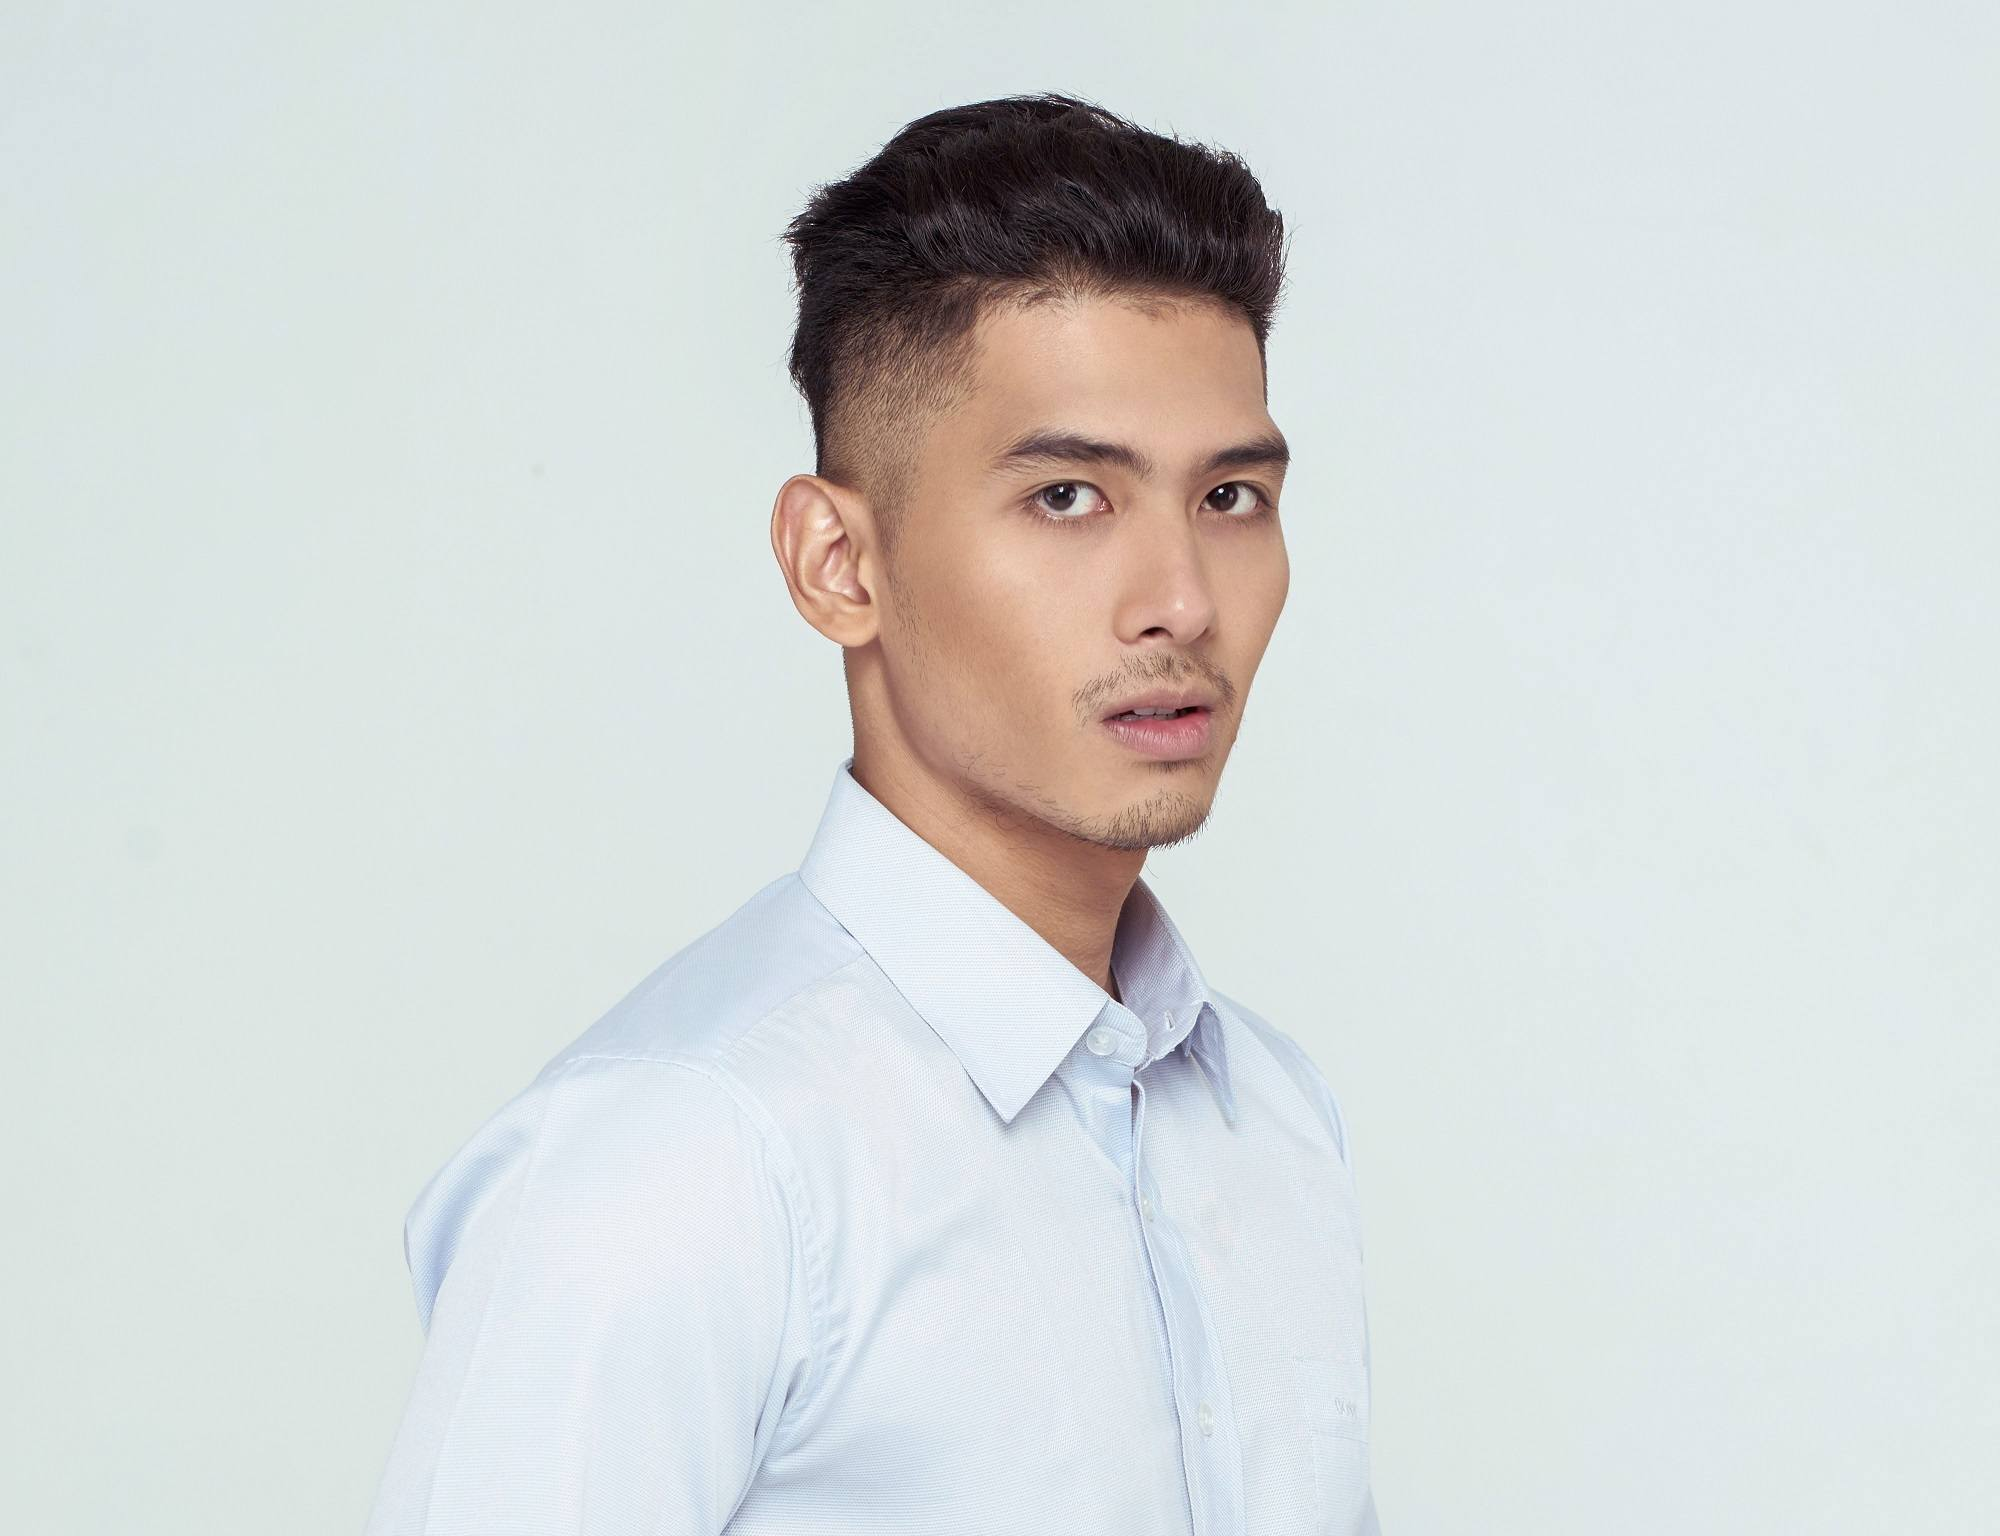 Shaved side hairstyles men: Asian man wearing a white collared polo with shaved side hairstyle and short hair standing against a white background